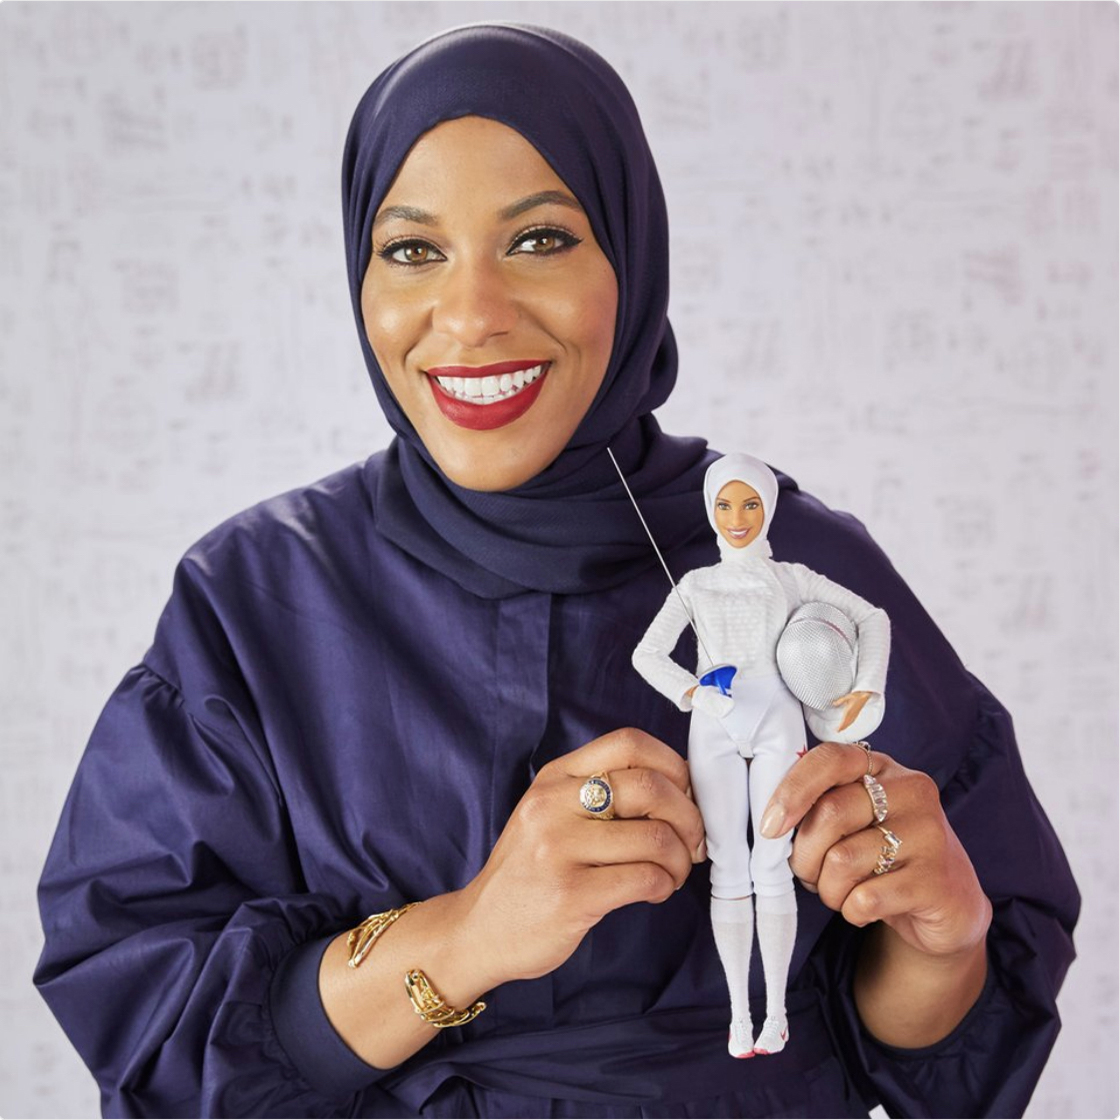 Coming to a Toy Store Near You: Mattel's Newest Doll, Hijab Barbie